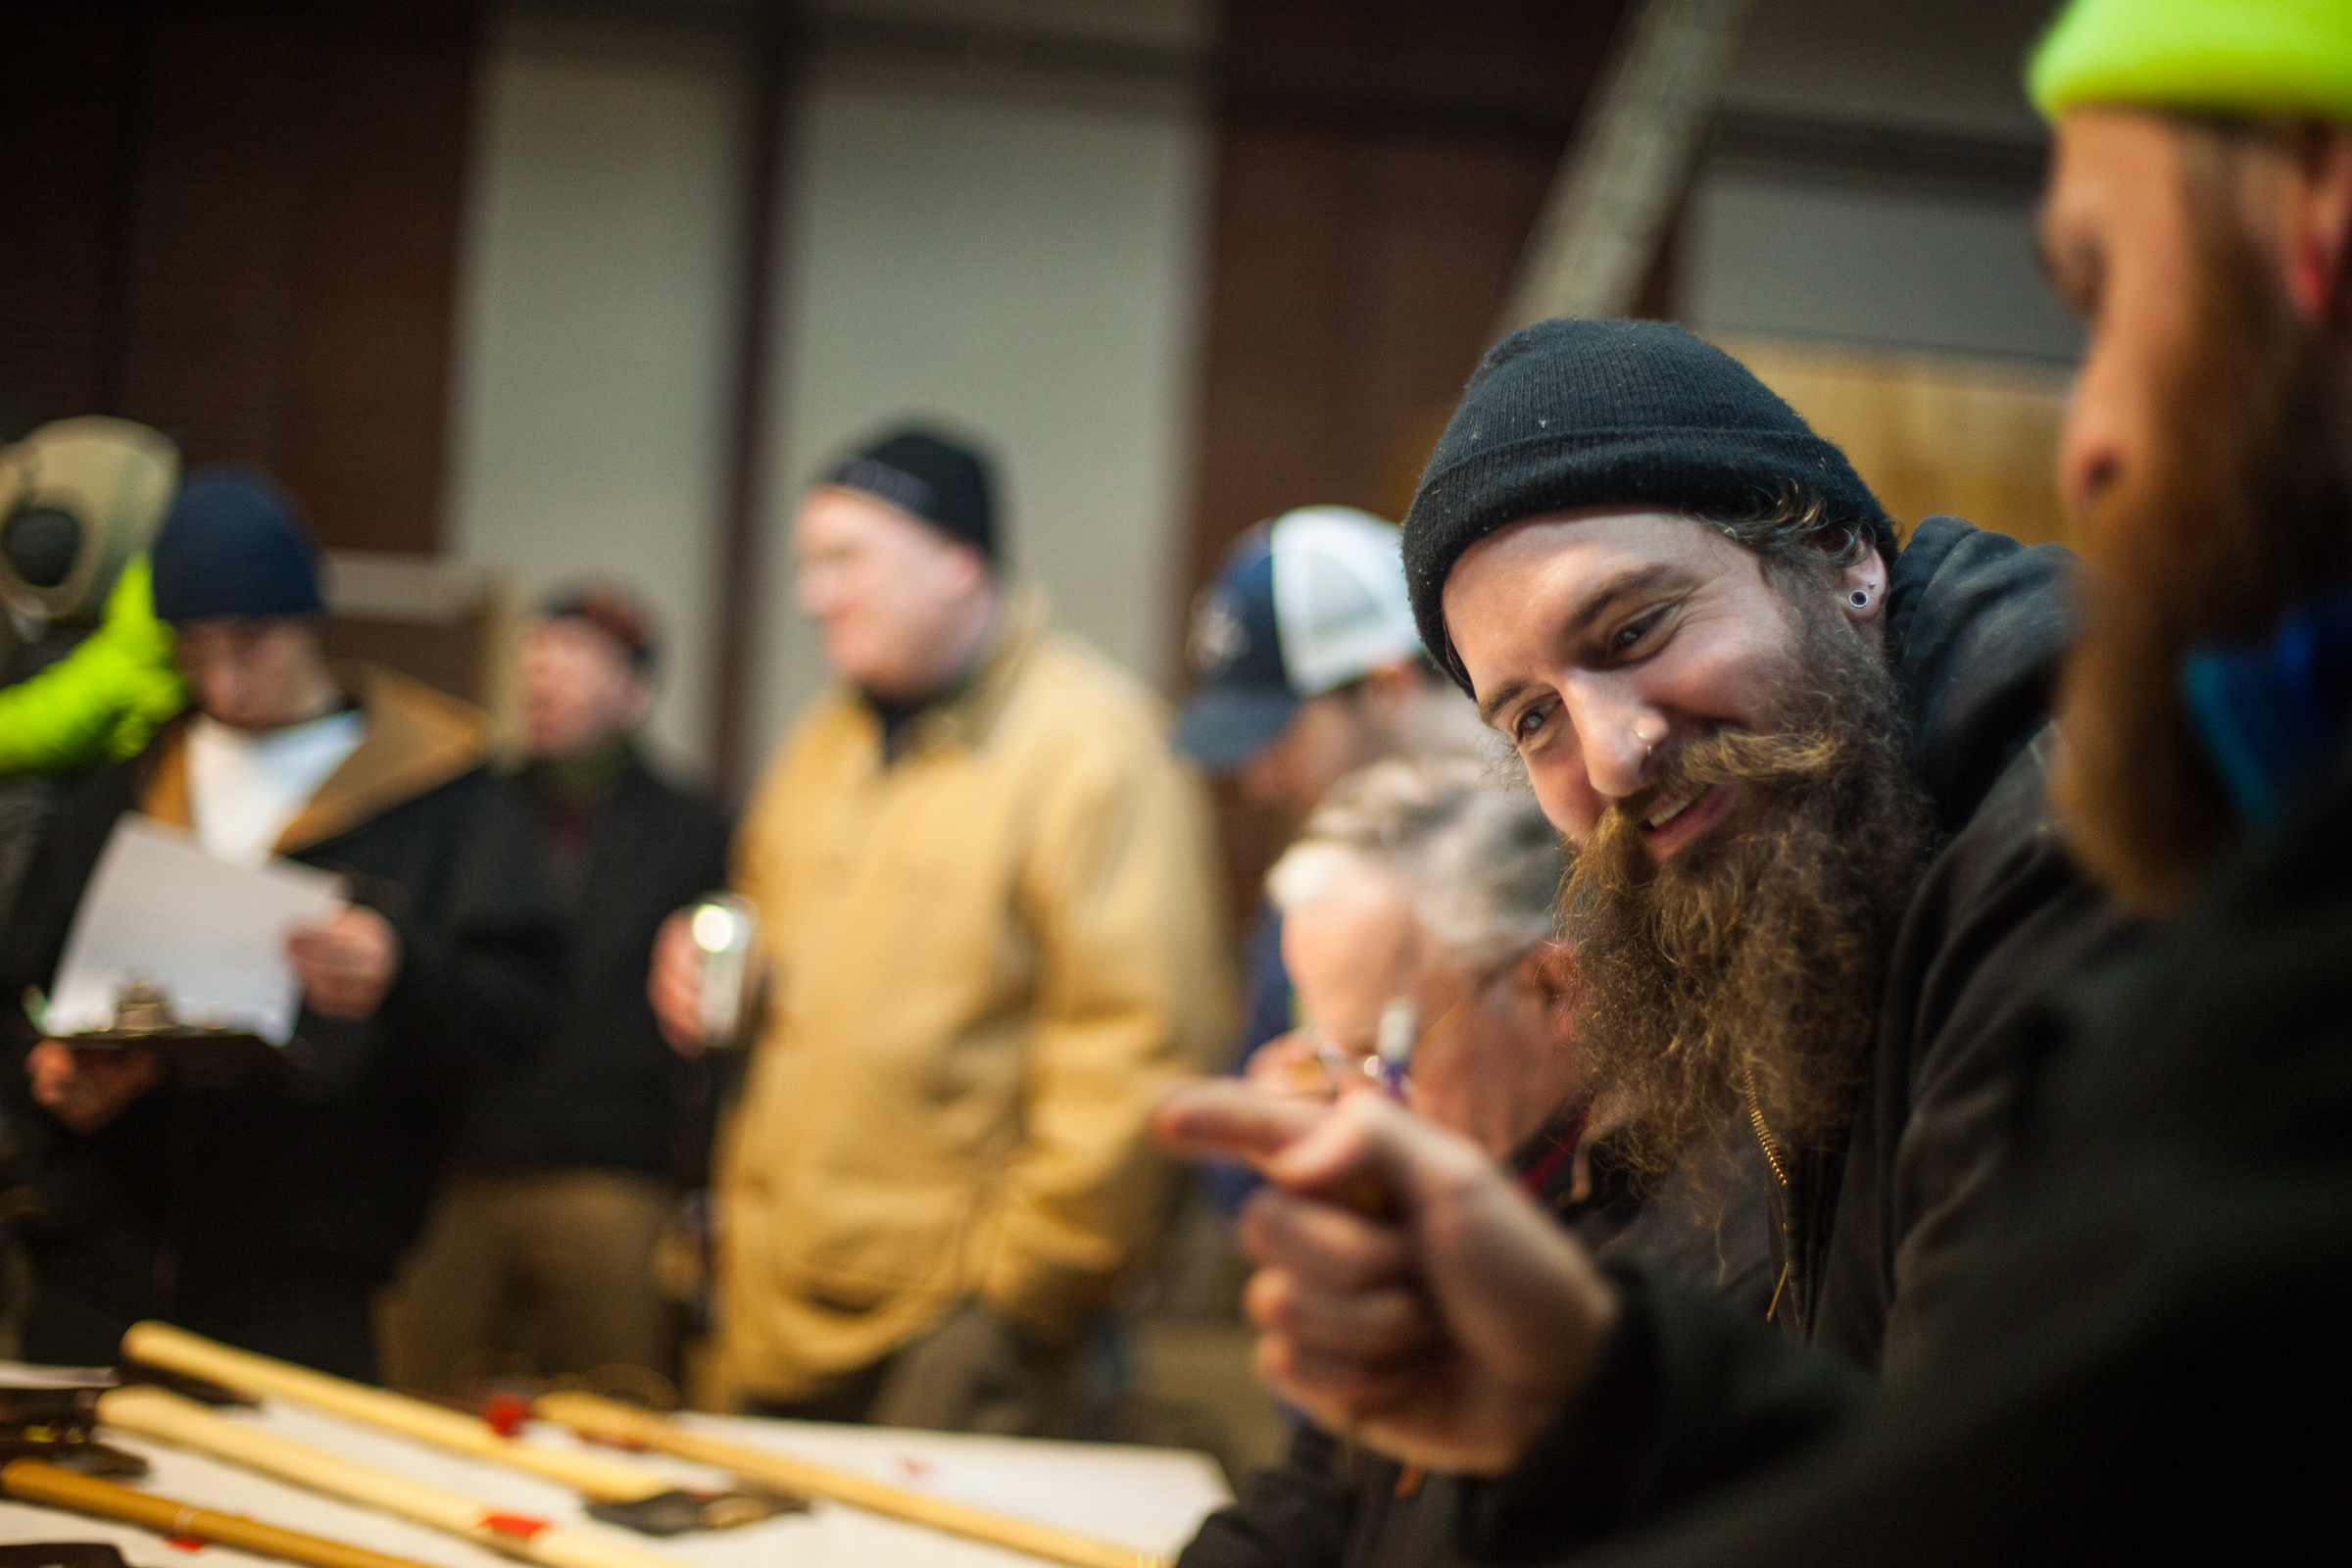 Mat O'Brien supporting Maine Axe makers, Brant & Cochran Tools, in a focus group, 2016.